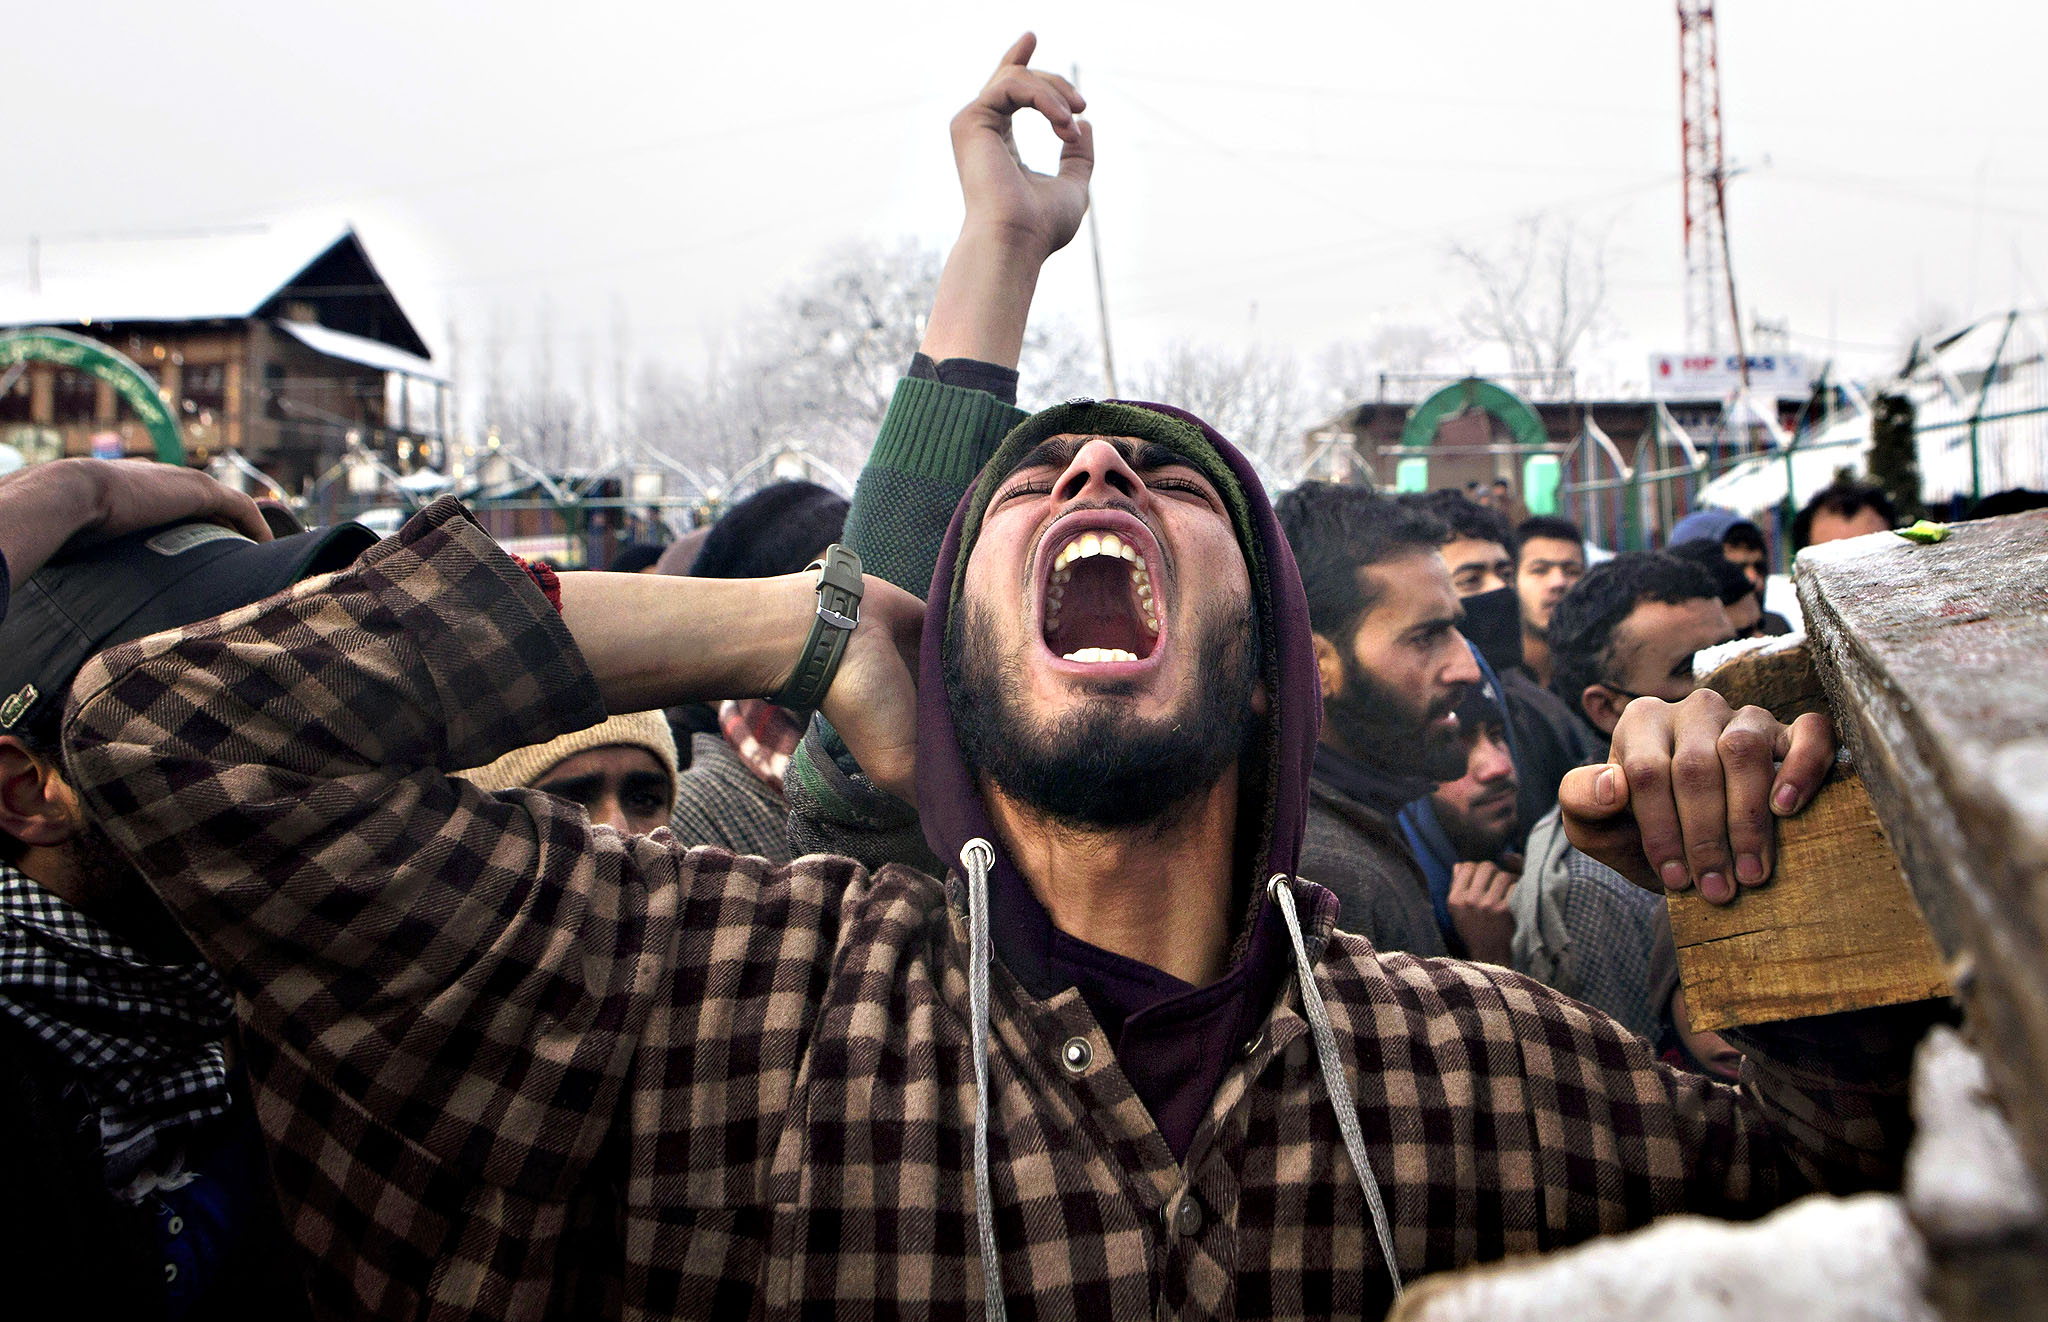 A Kashmiri Muslim villager shouts pro freedom slogans during the funeral procession of Shabir Ahmed Gania, a suspected local militant of Hizbul Mujahideen outfit, in Drubgham, some 55 kilometers (33 miles) south of Srinagar, India, Thursday, Feb. 26, 2015. Thousands attended the funeral of two suspected militants killed in a fierce gunbattle Wednesday in a southern village of the disputed Himalayan region of Kashmir, according to local reports.